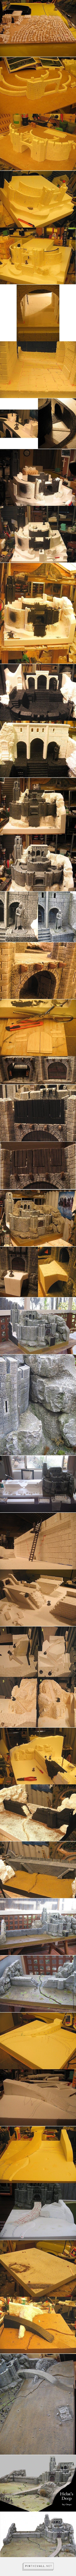 Helm's Deep | Onyx's Hobby Blog - created via http://pinthemall.net